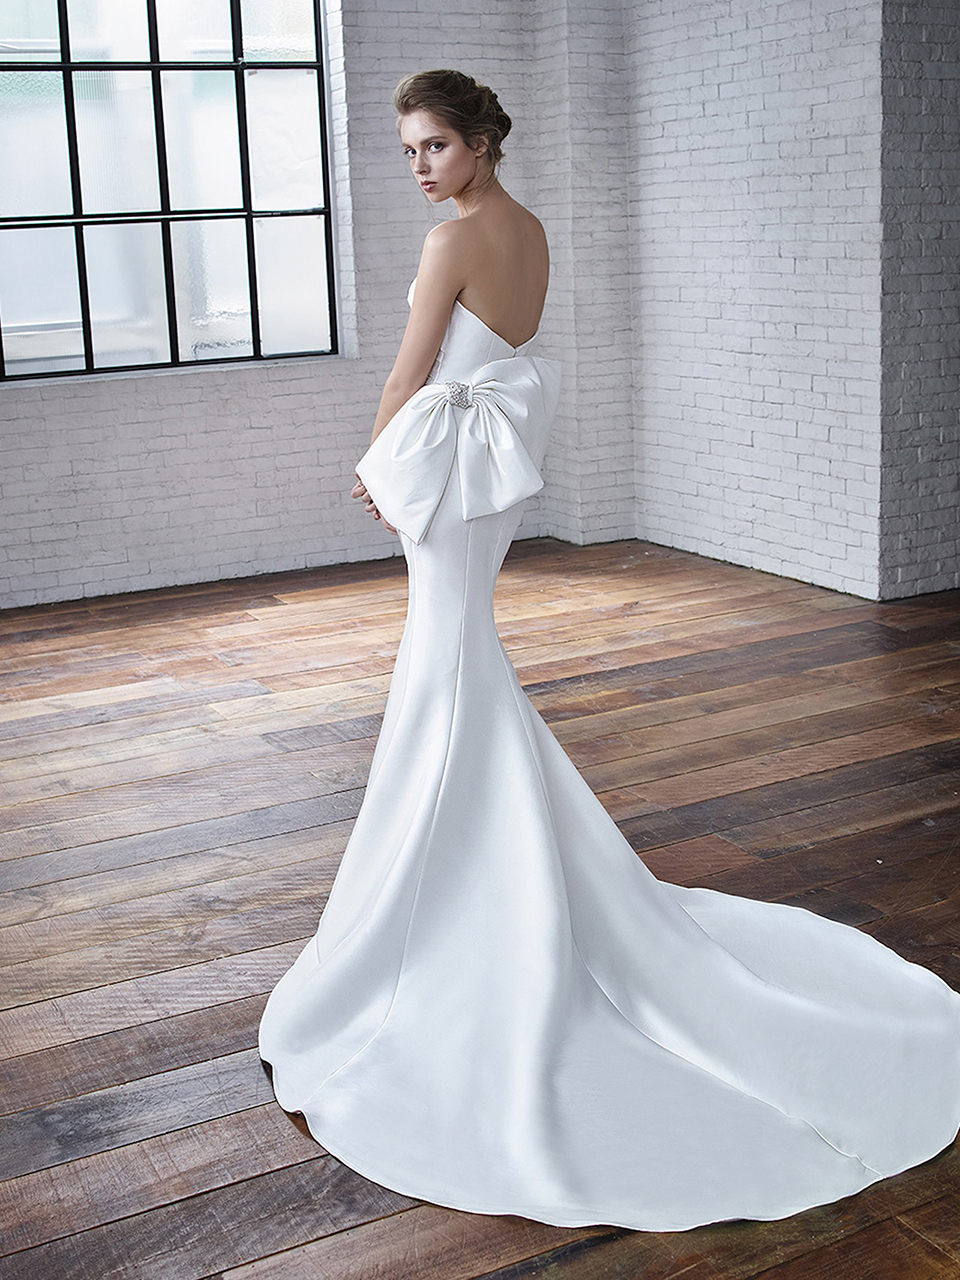 Carmen:  This is a very sophisticated style. The fabric is a stretch Mikado, allowing the gown to beautifully form to the bride's silhouette. The ruched bodice is accented with a gorgeous bow finish off this classic look!